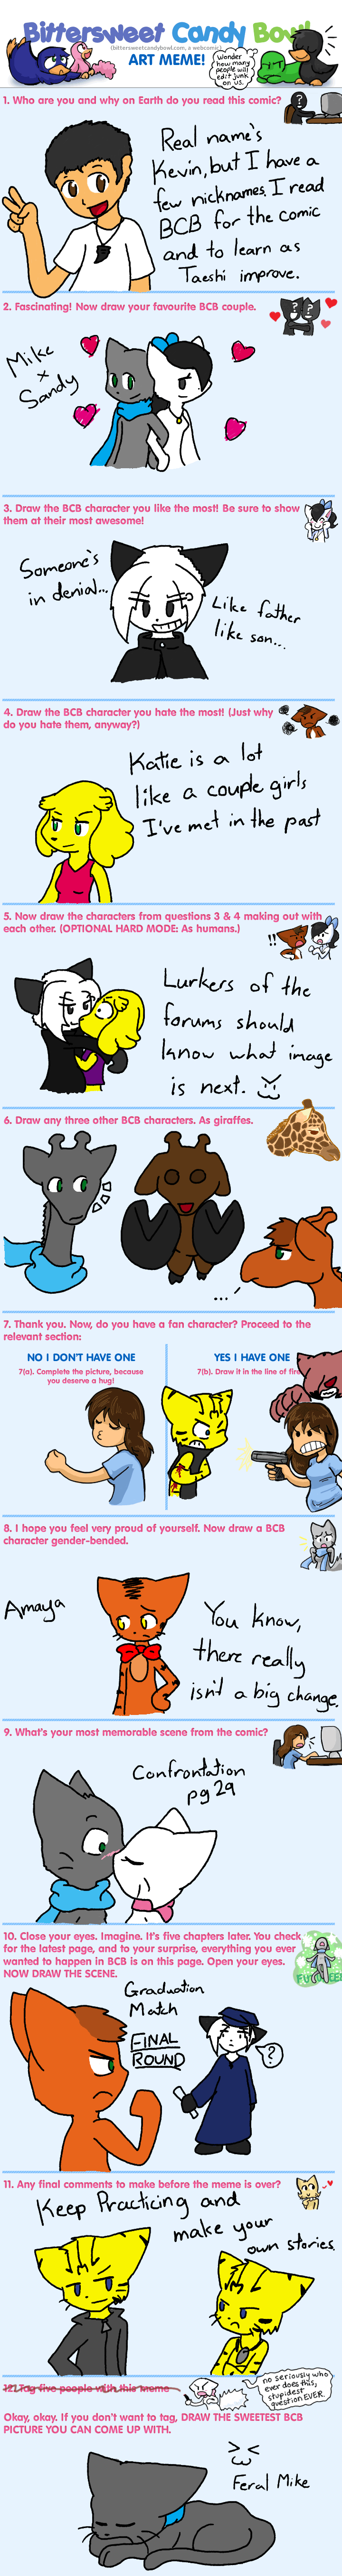 Candybooru image #1458, tagged with Abbey Amaya Augustus BCB_Art_Meme David Jack Katie Lucy Mike Sandy Suri Ved_the_Flame_Devil_(Artist) fancharacter meme